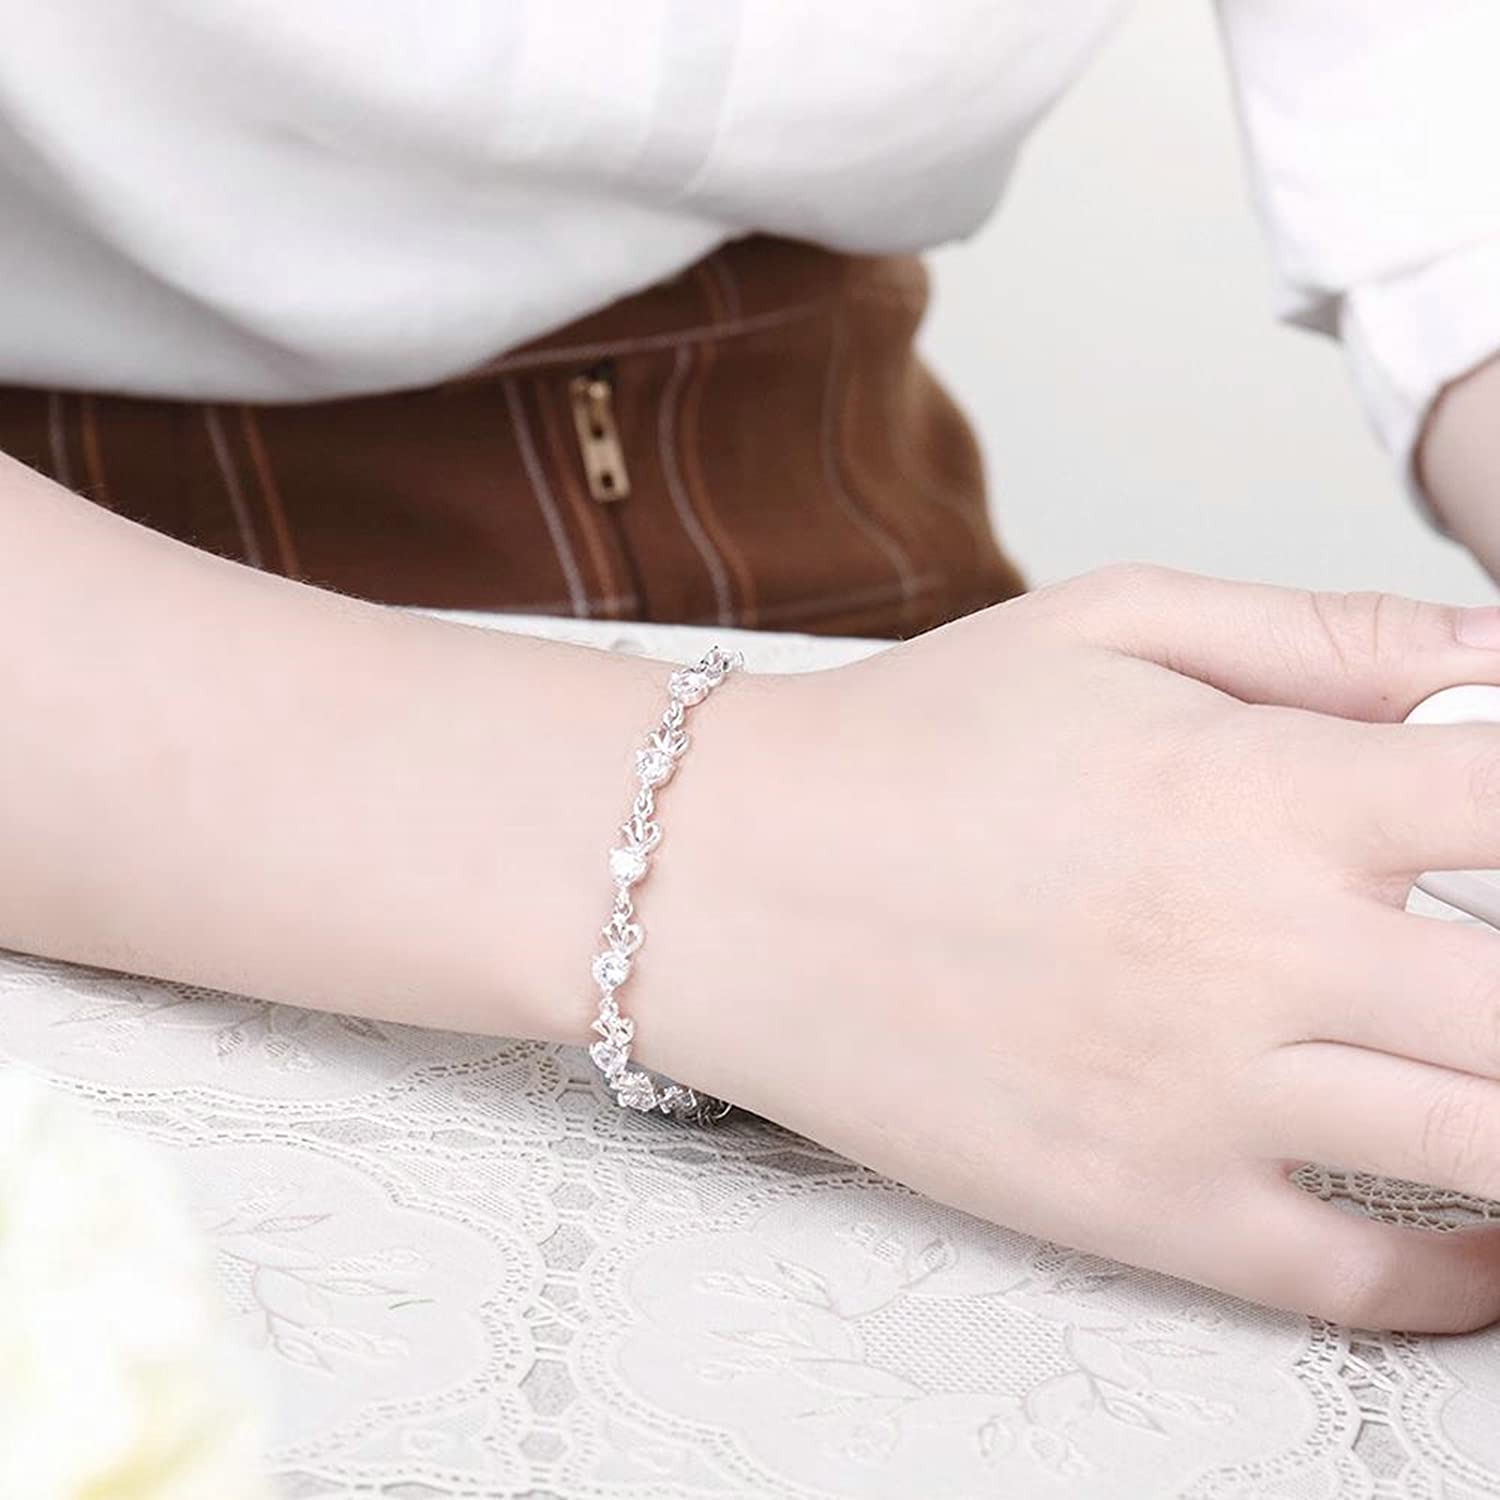 Aokarry Jewelry Silver Plated Silver Crystal Link Bracelet Bangle for Women Brides Girls On Wedding Anniversary